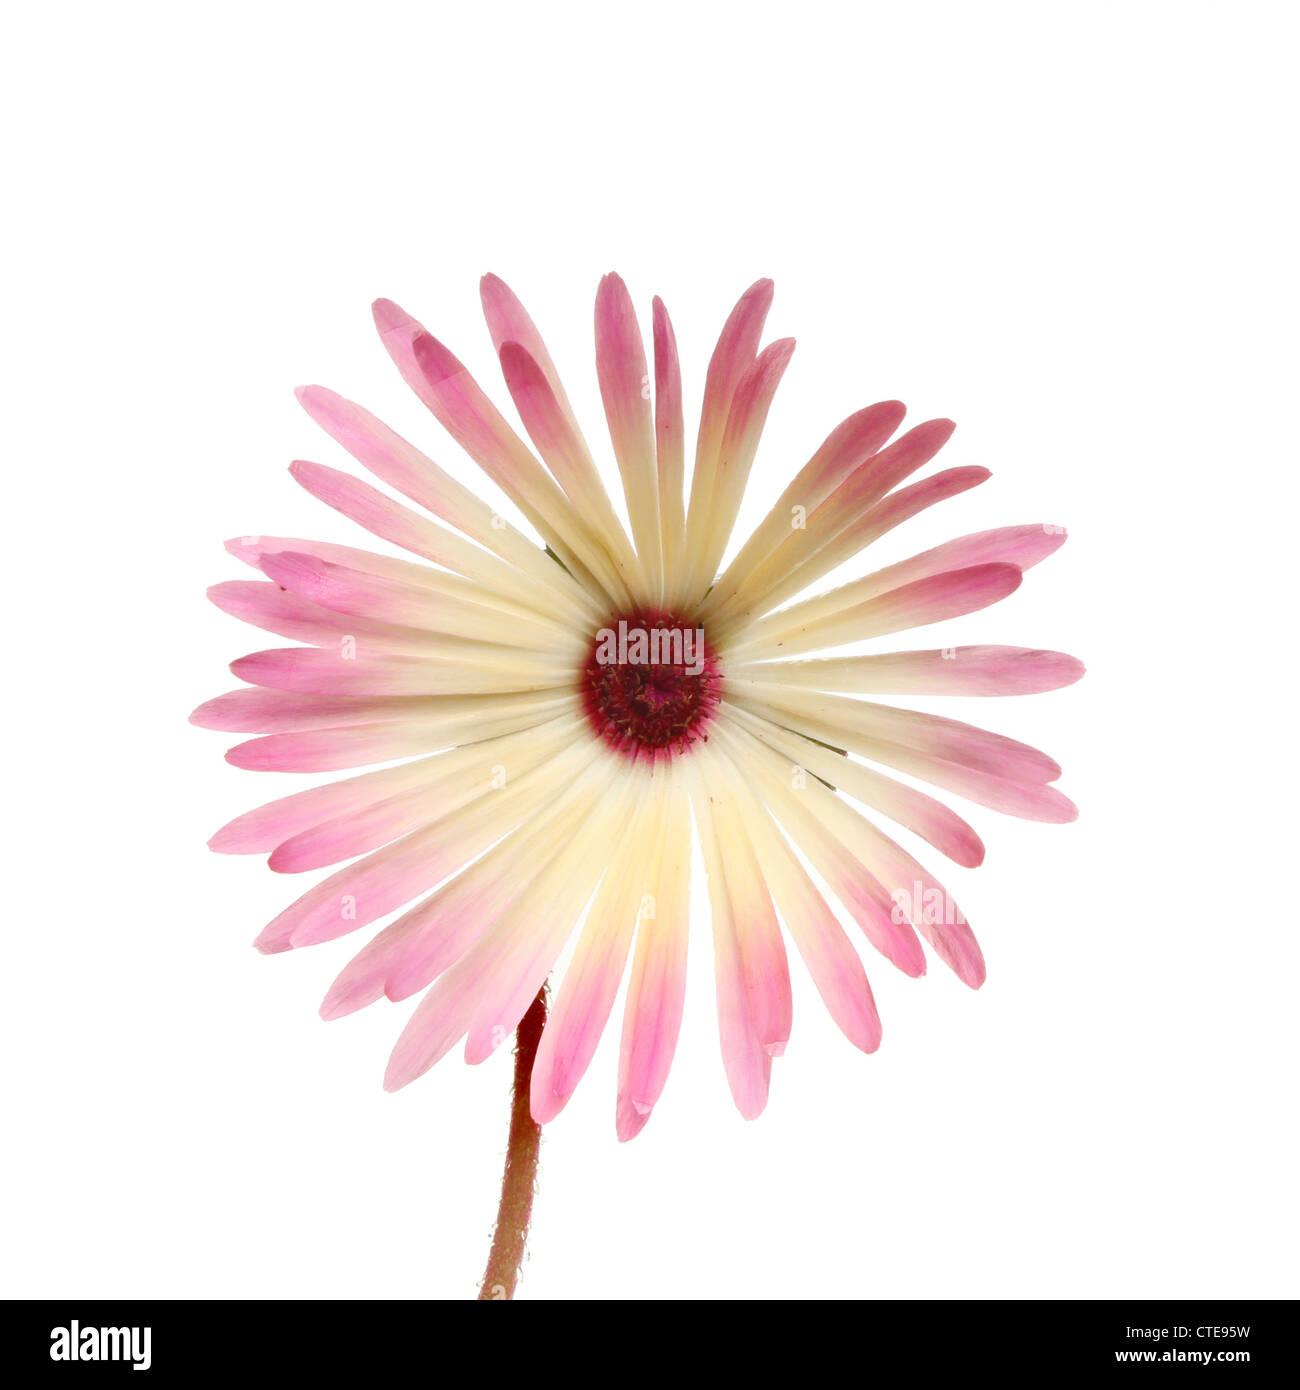 Daisy flower meaning stock photos daisy flower meaning stock mesembryanthemum flower meaning midday opening isolated against white stock image izmirmasajfo